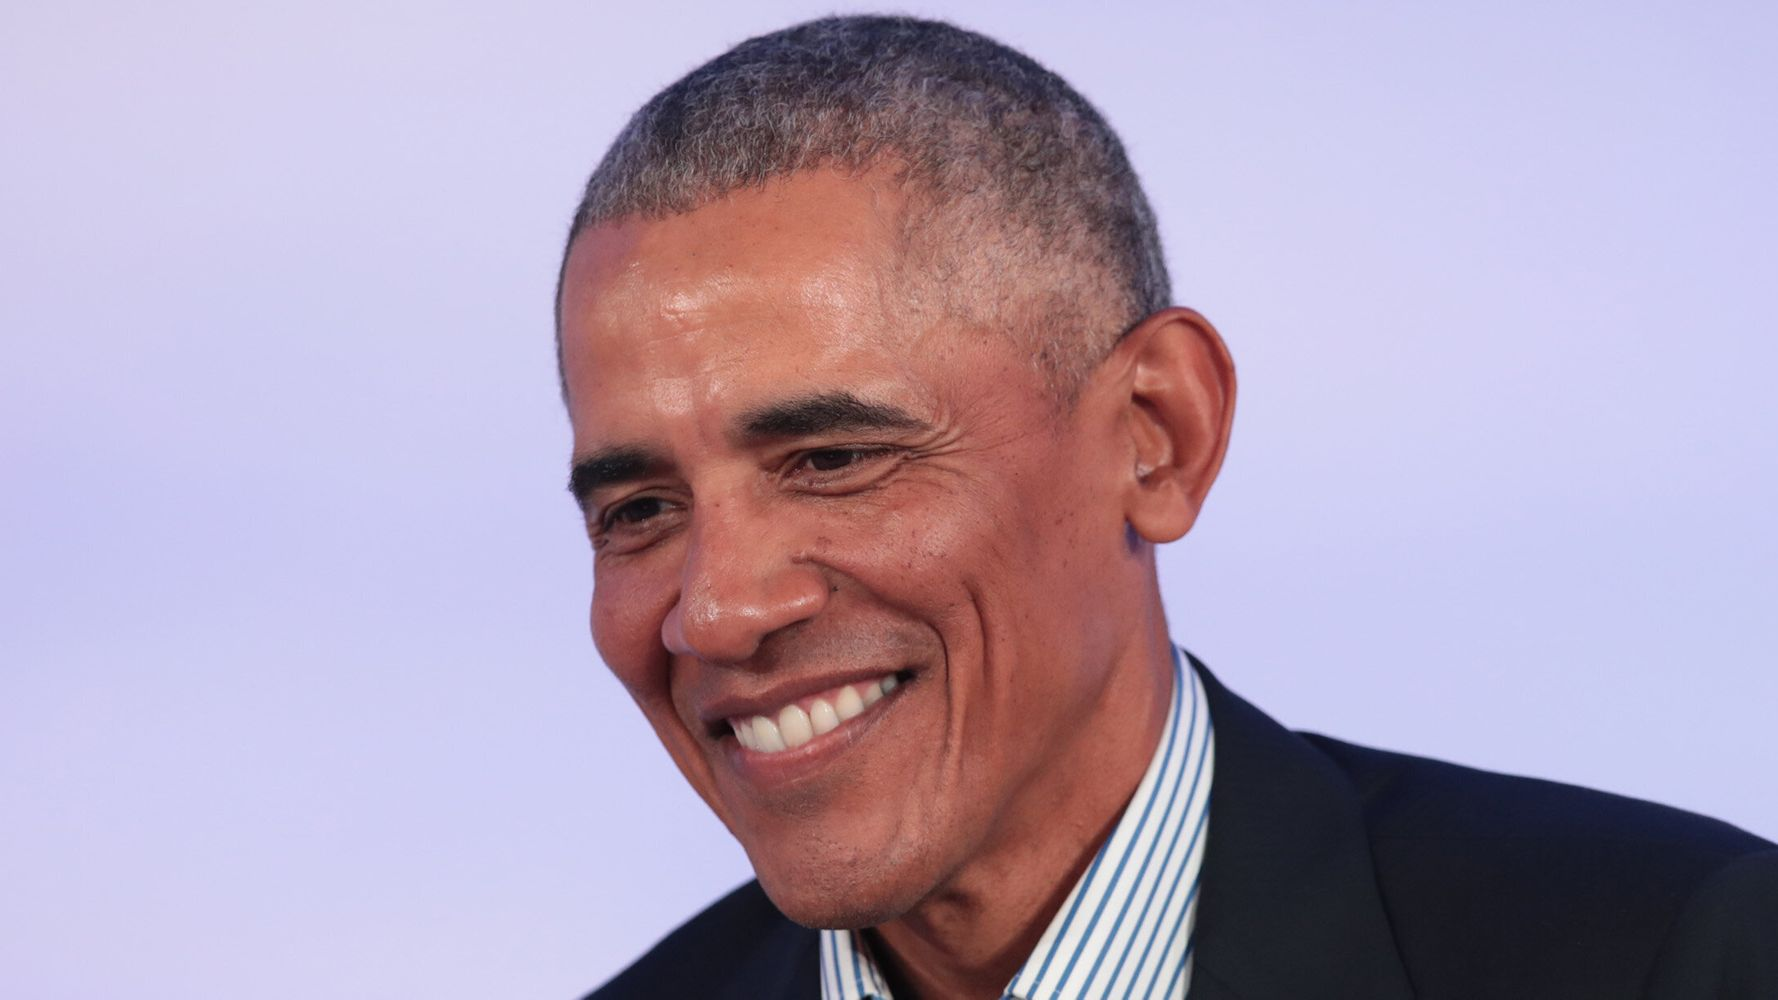 Obama's Thanksgiving Message For 2019 Stresses Giving Back